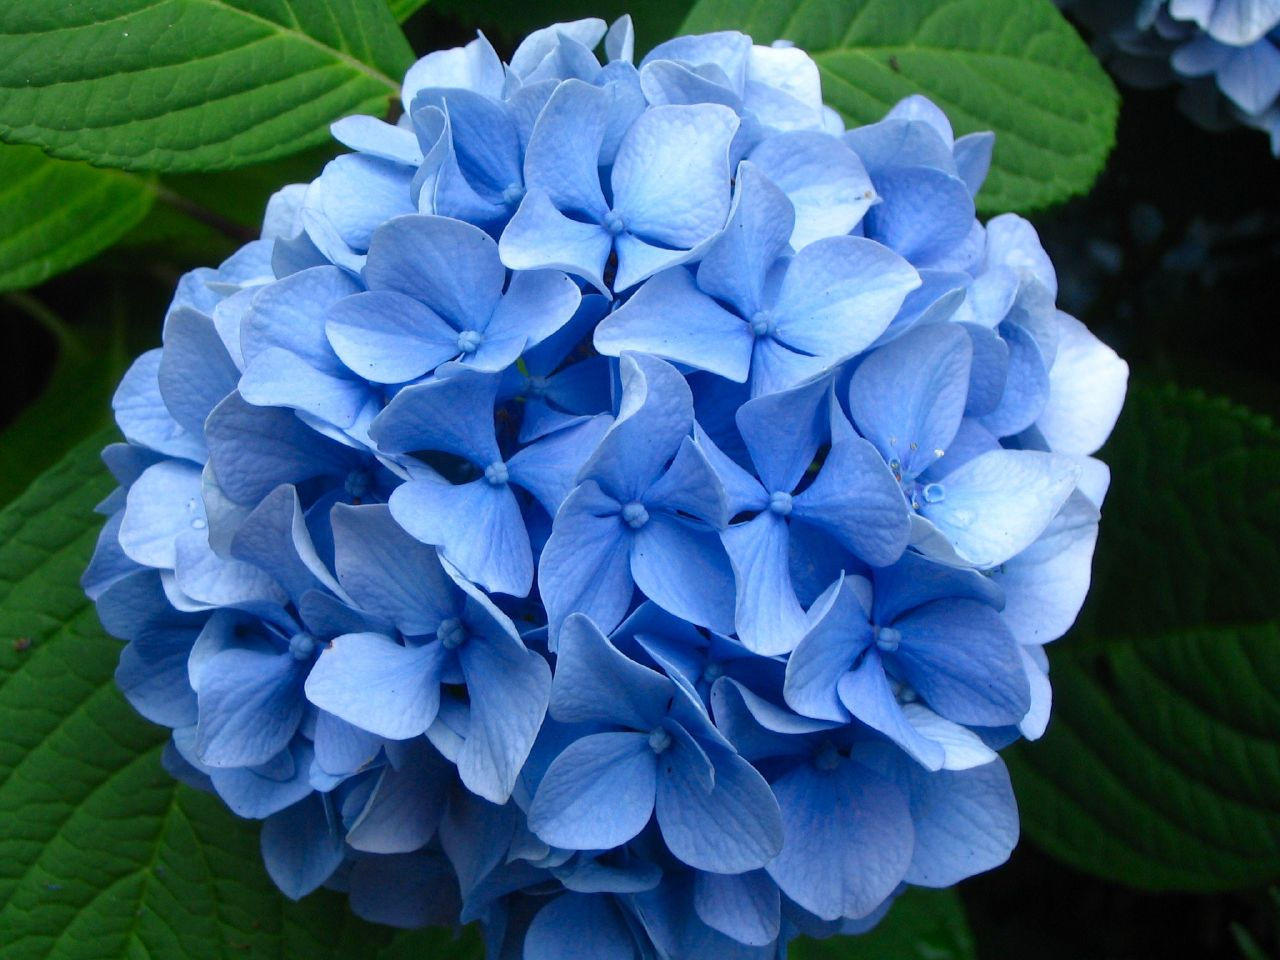 lawn and garden feature growing and caring for hydrangeas, Beautiful flower